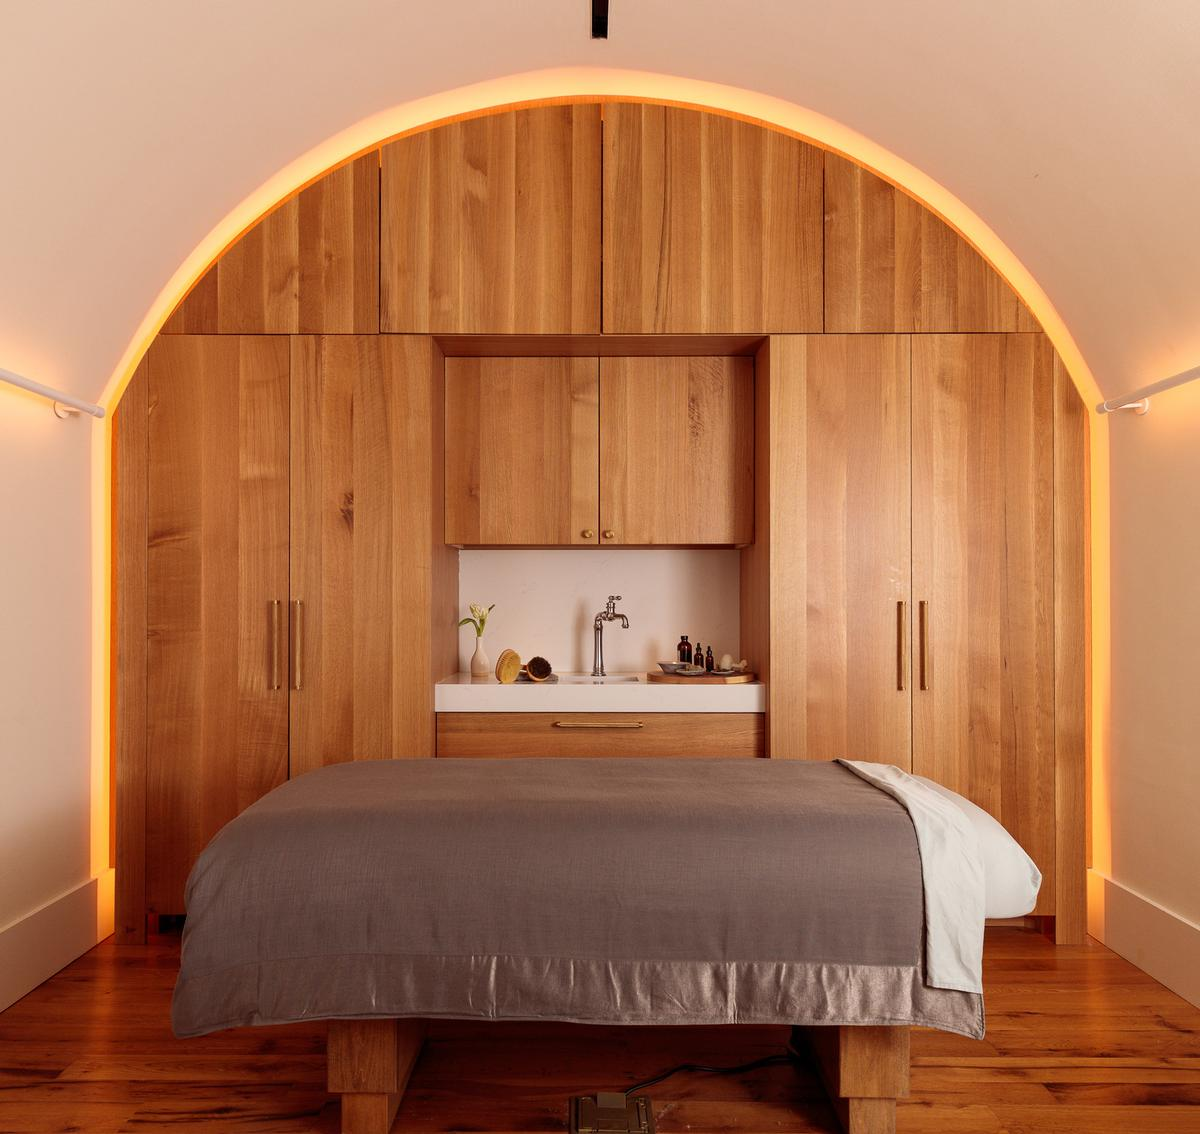 Guests will also be able to visit Blackberry Mountain's spa, called Nest.